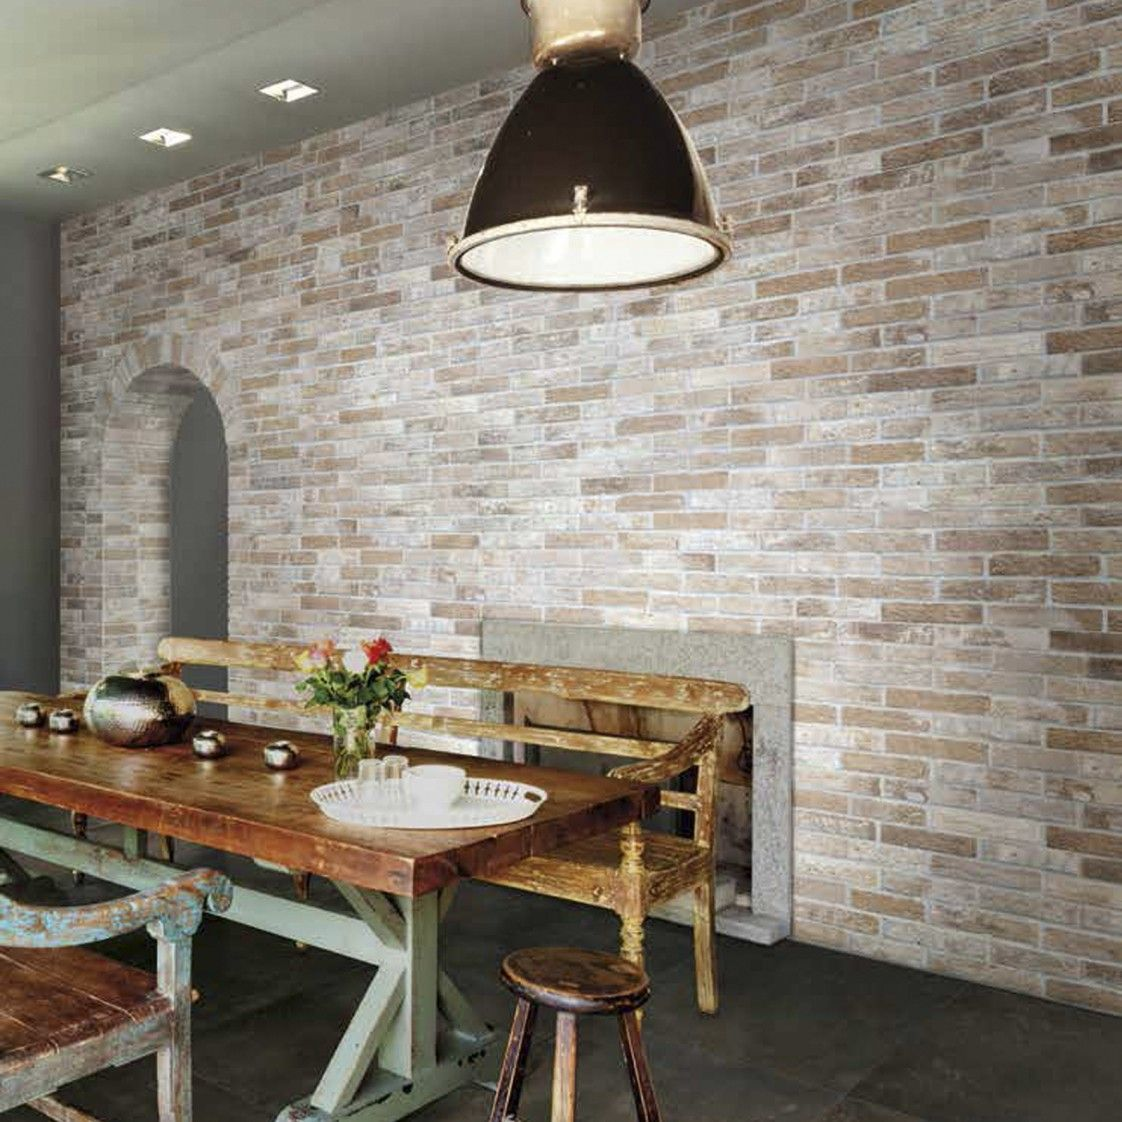 Ceramica Rondine Brick Generation Tiles in Singapore